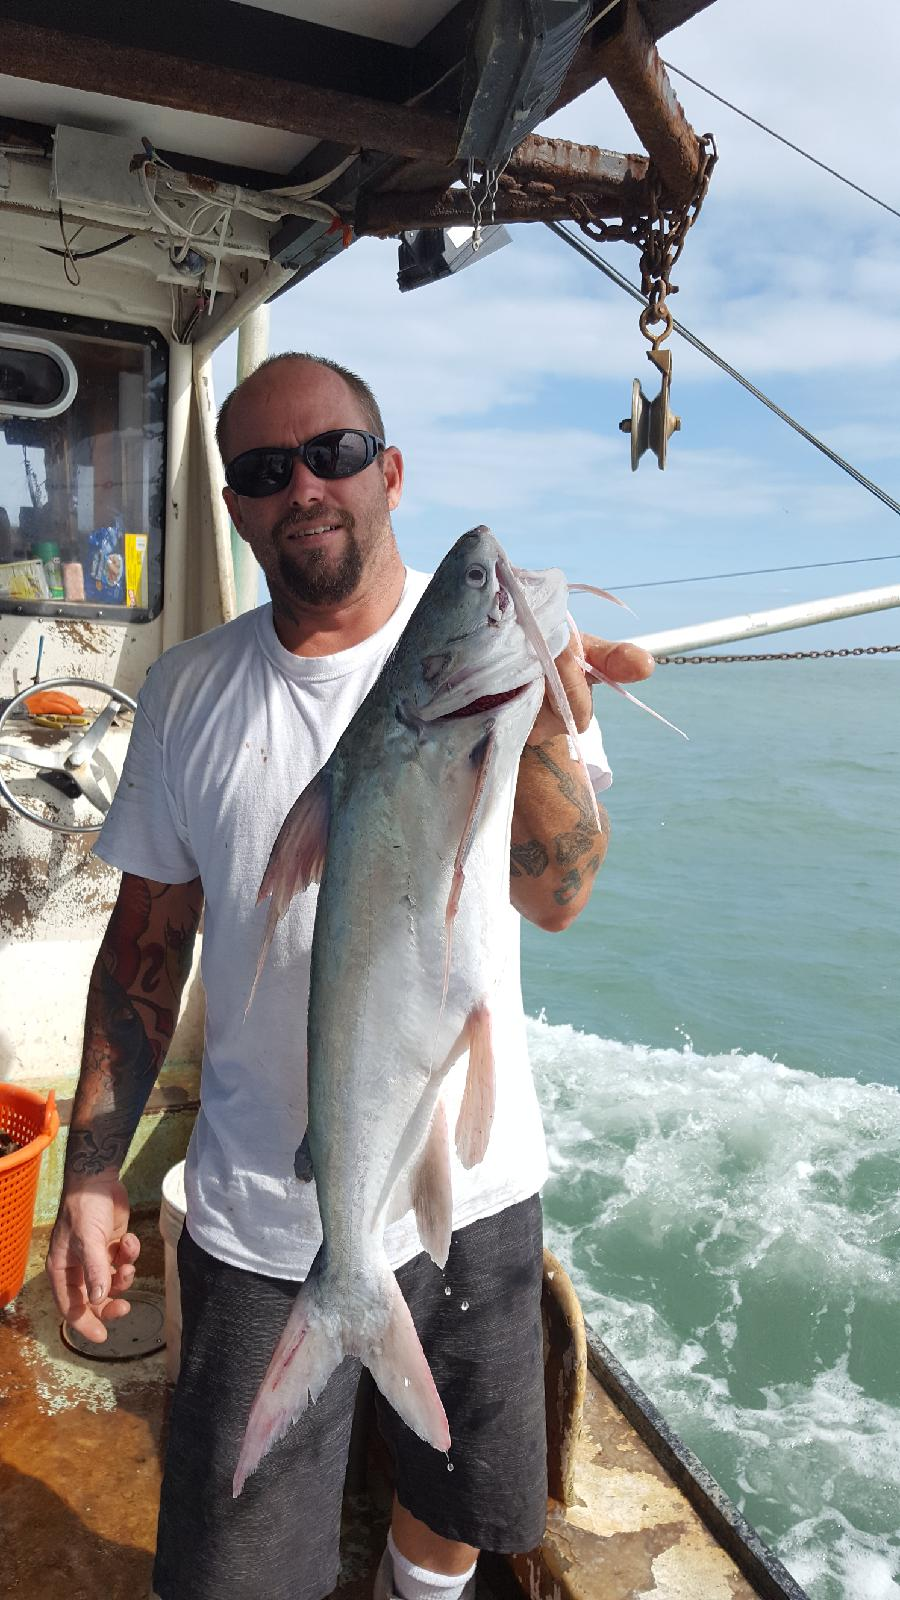 The saltwater catfish served by Smithtown Seafood is caught wild from the Atlantic Ocean by folks like Captain Richie, above, in the Daytona Beach-Ponce Inlet area of Florida. Kelly said that saltwater catfish is one of the few species biting offshore right now,after the hurricanes stirred up the ocean.